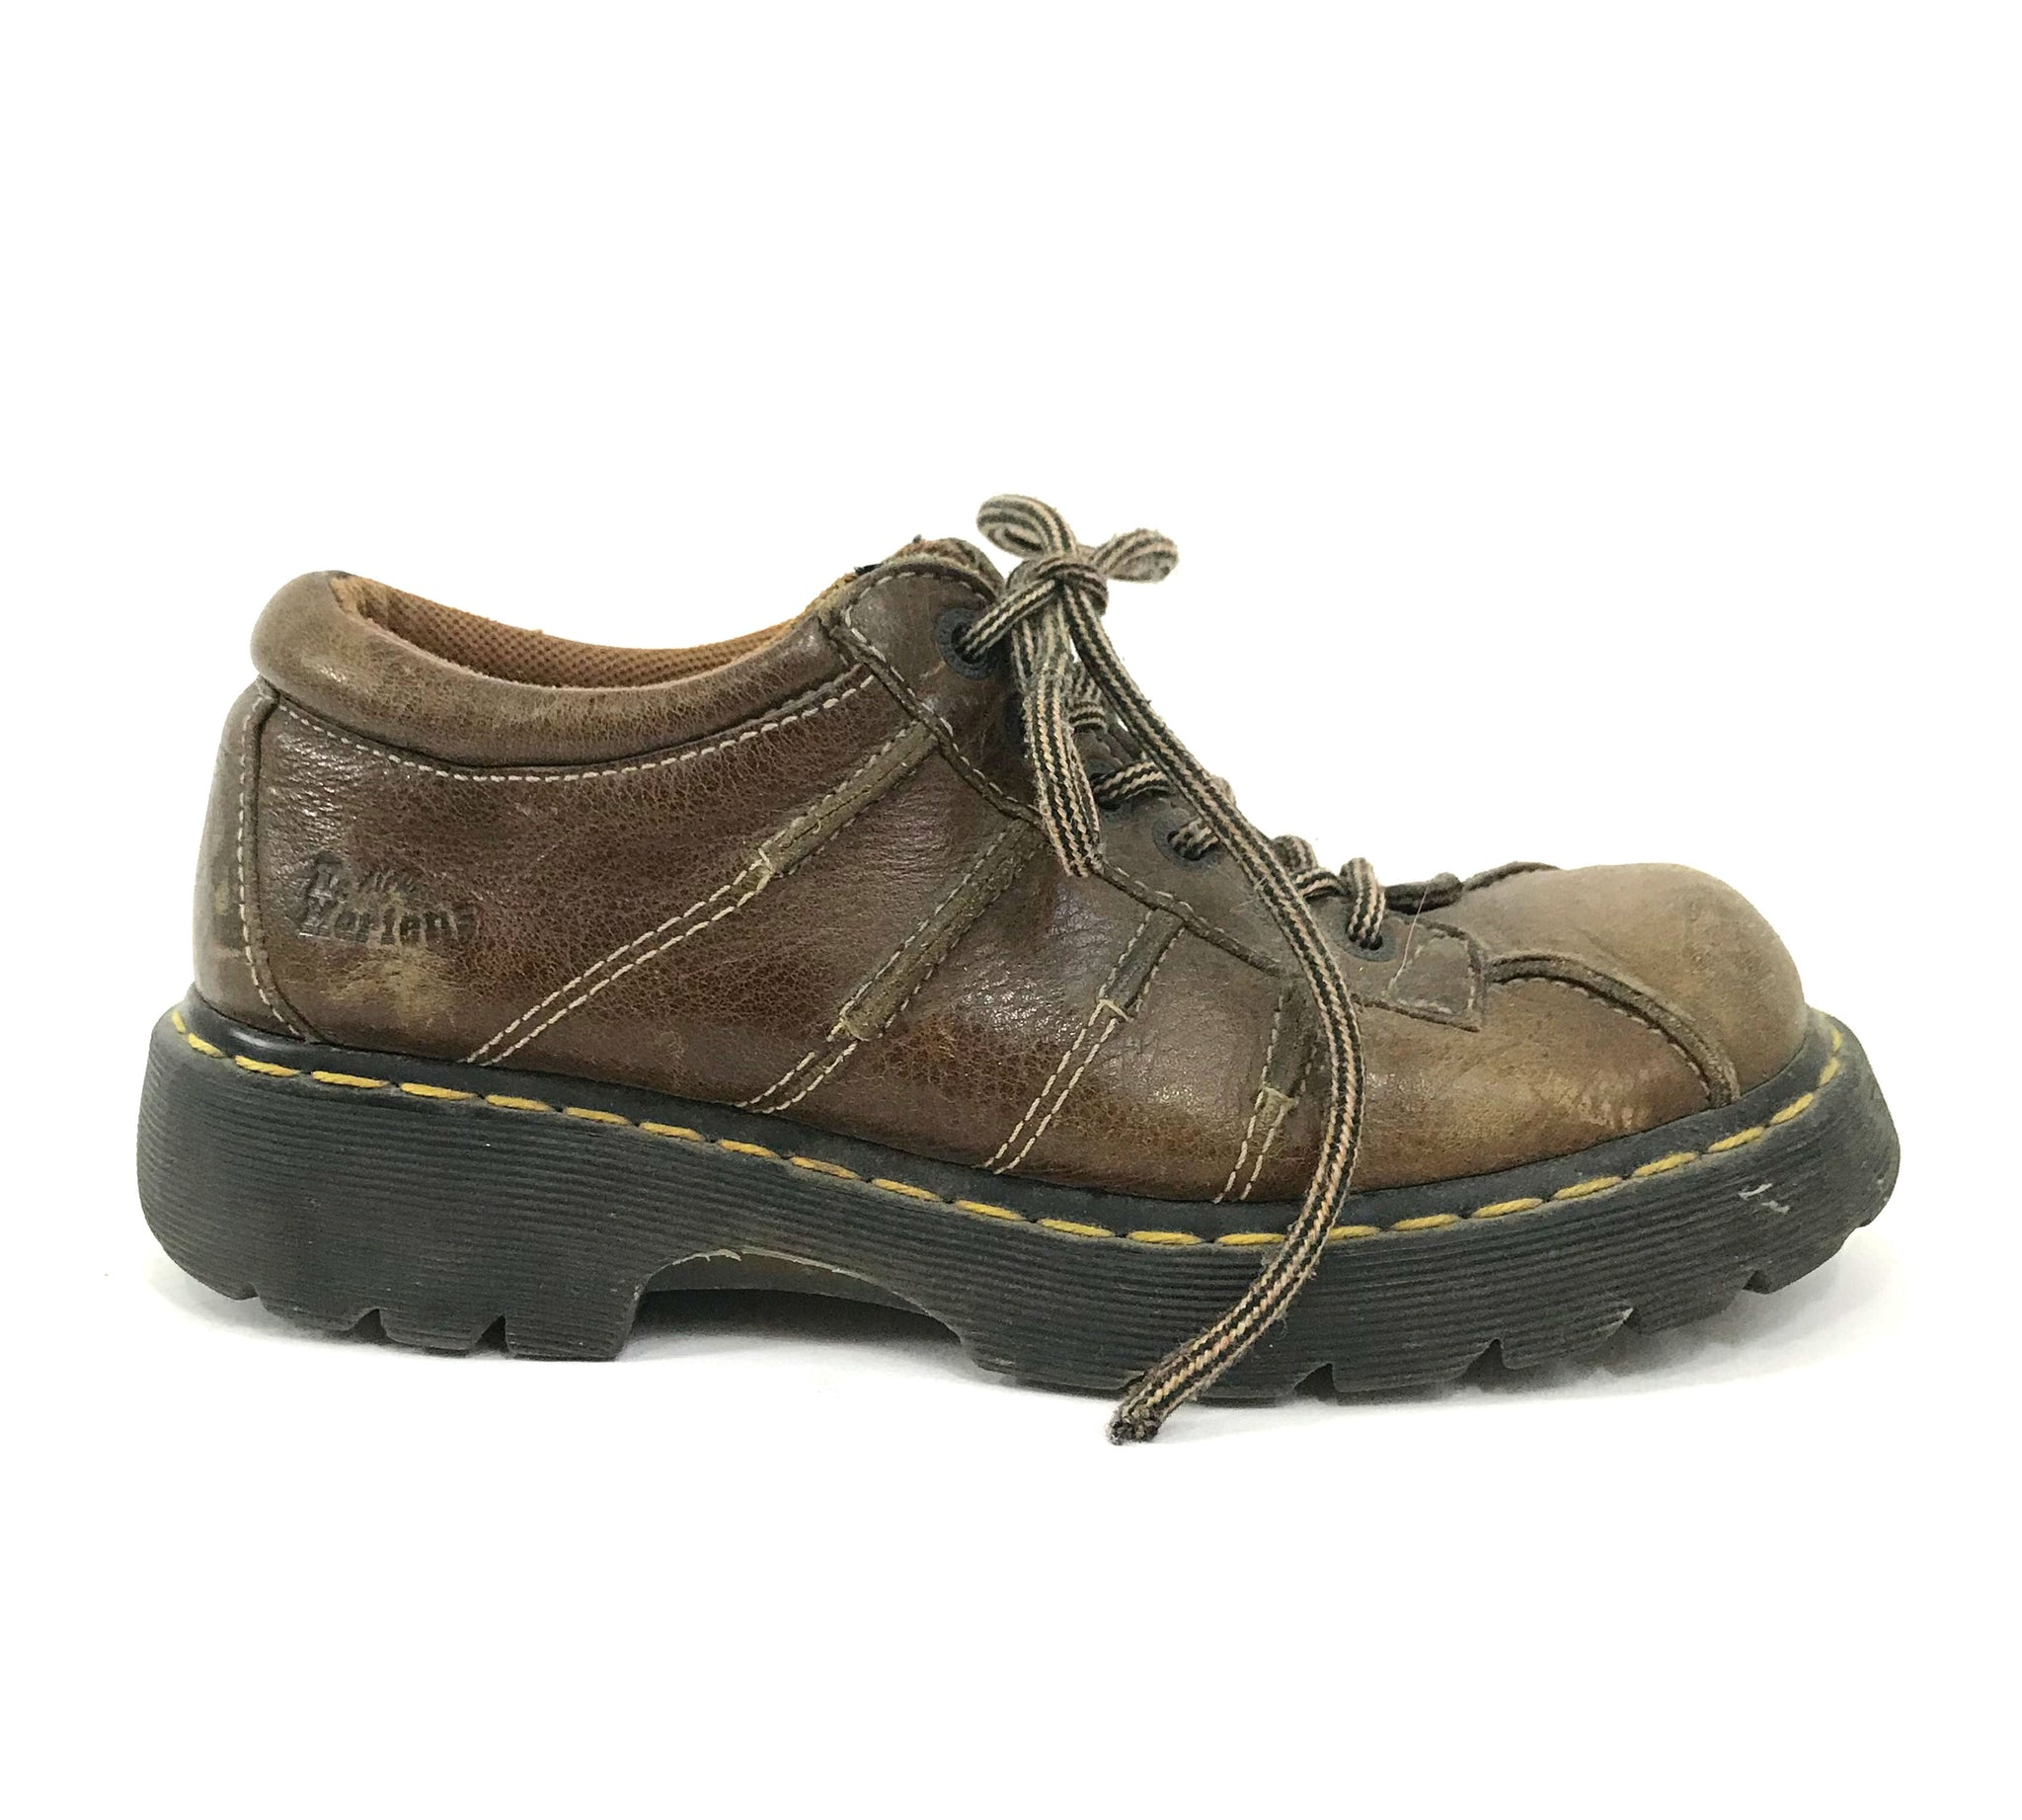 Doc Marten Shoes